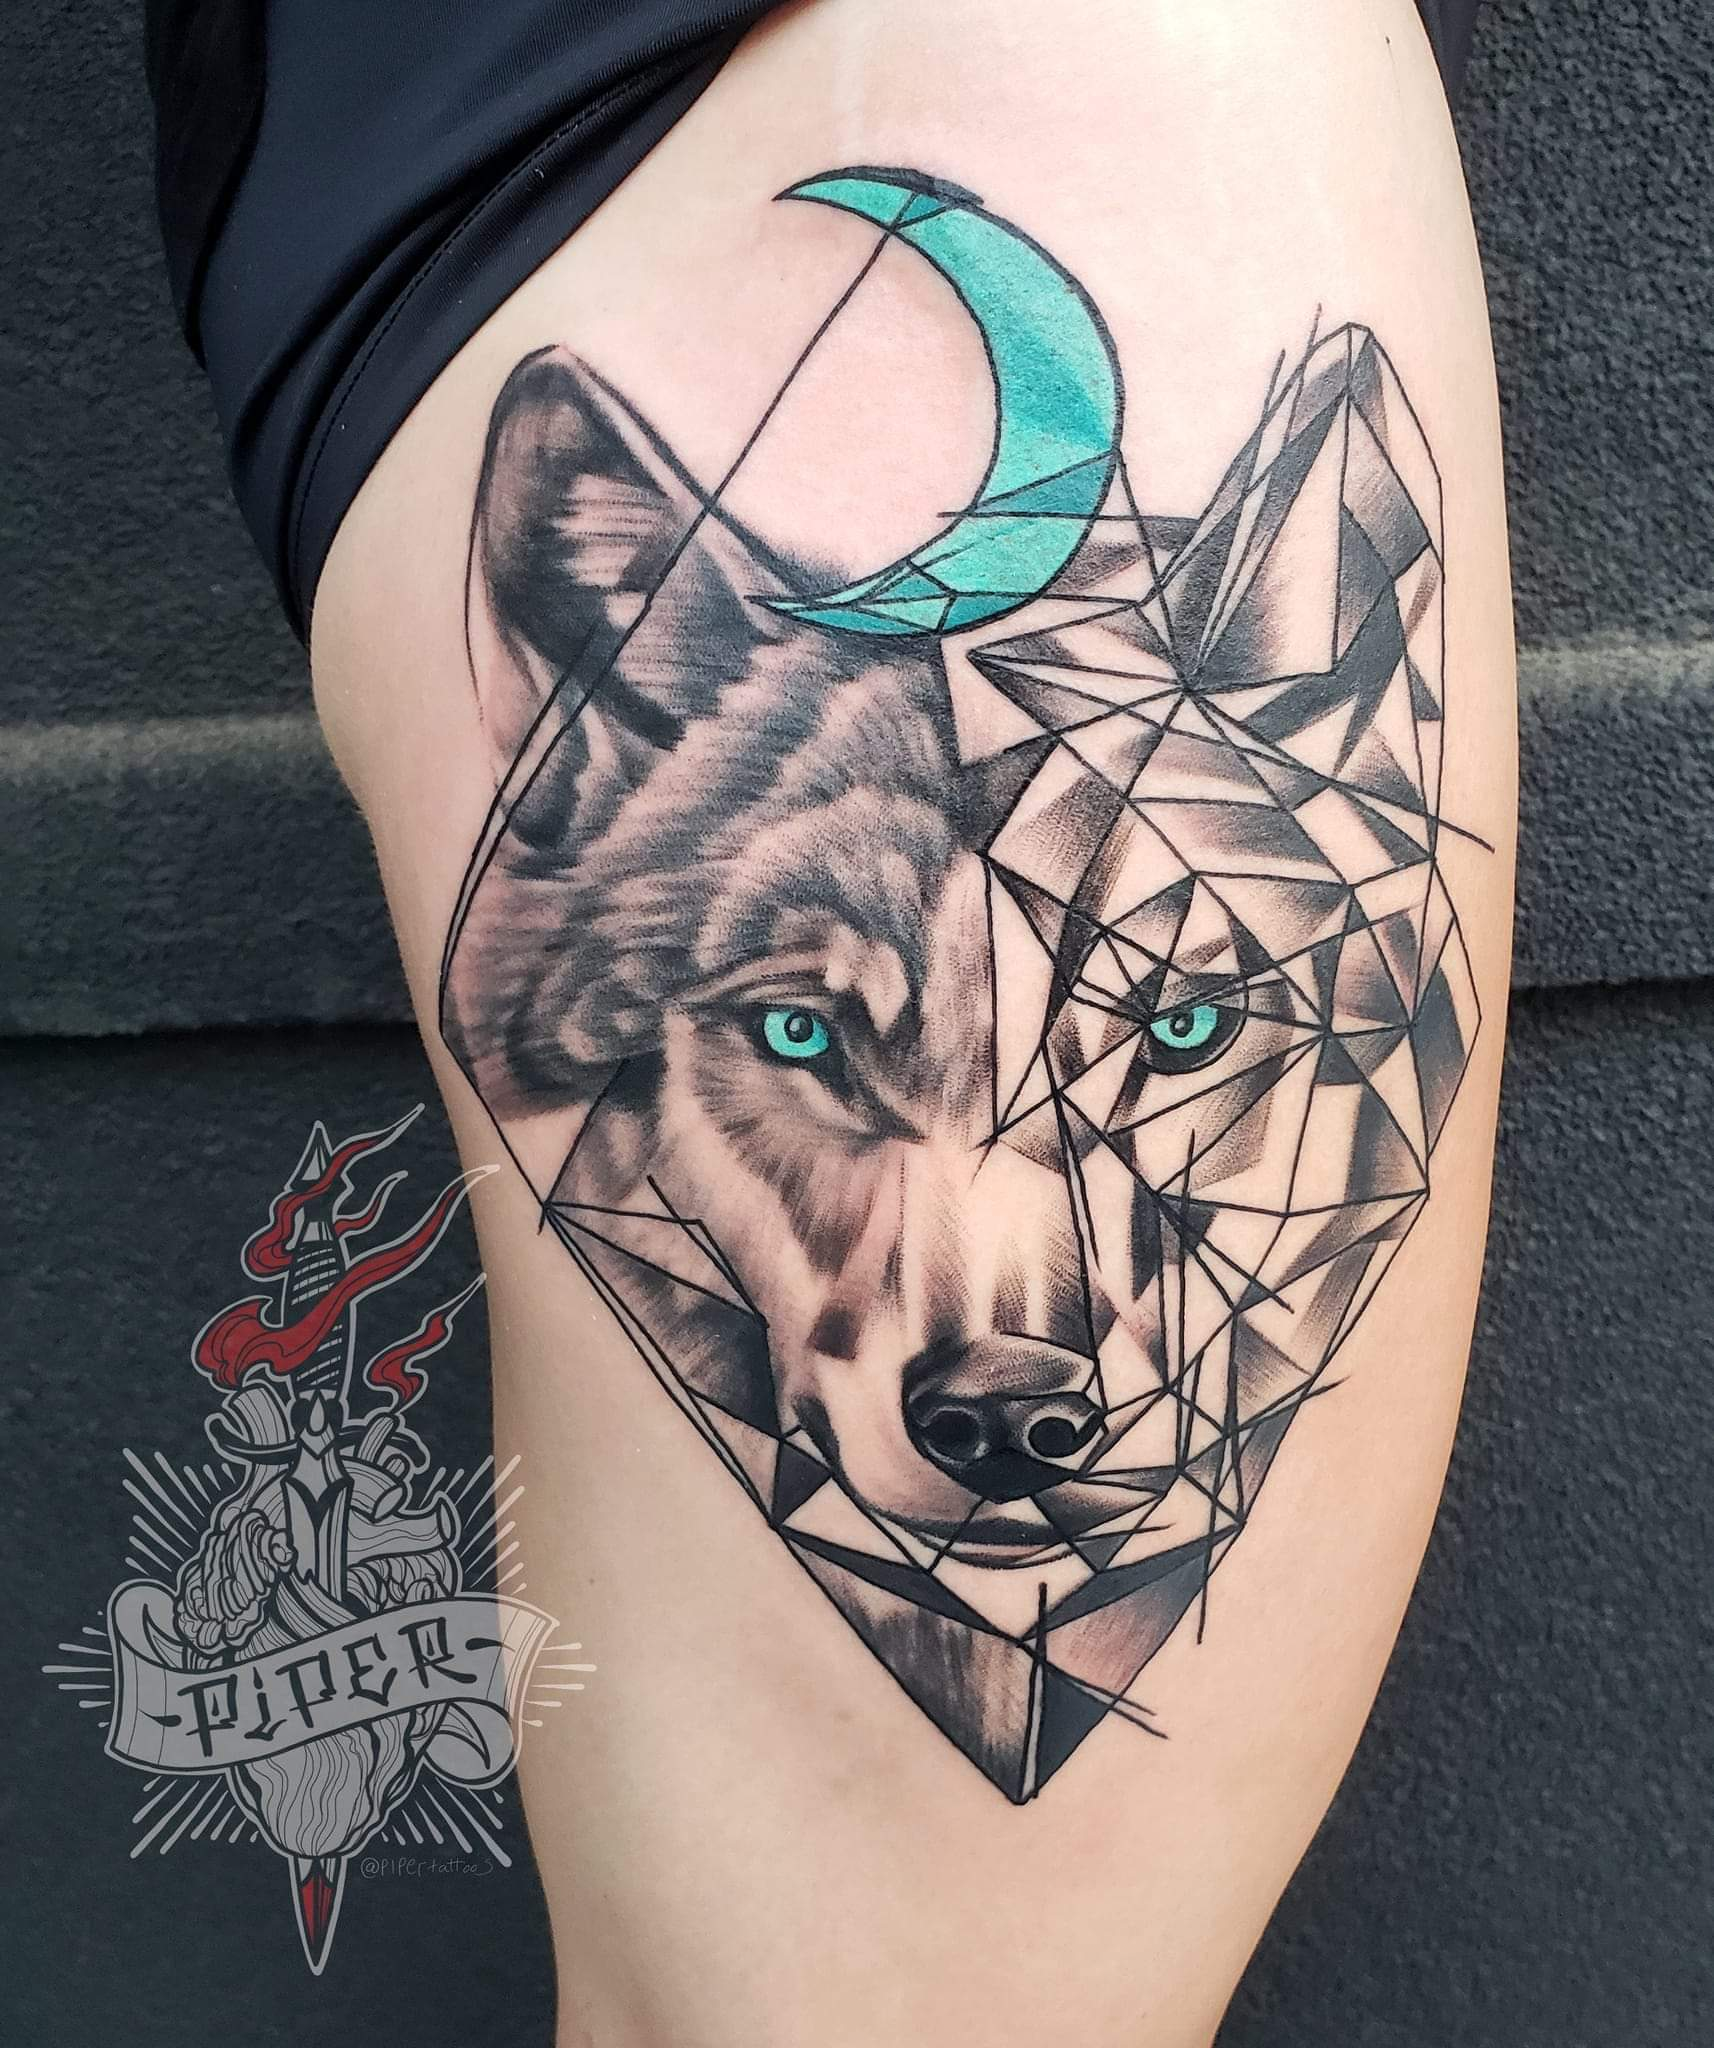 Custom Geometric Wolf Portrait and Cresent Moon Tattoo by Mike Piper at Certified Tattoo Studios Denver Co .jpg